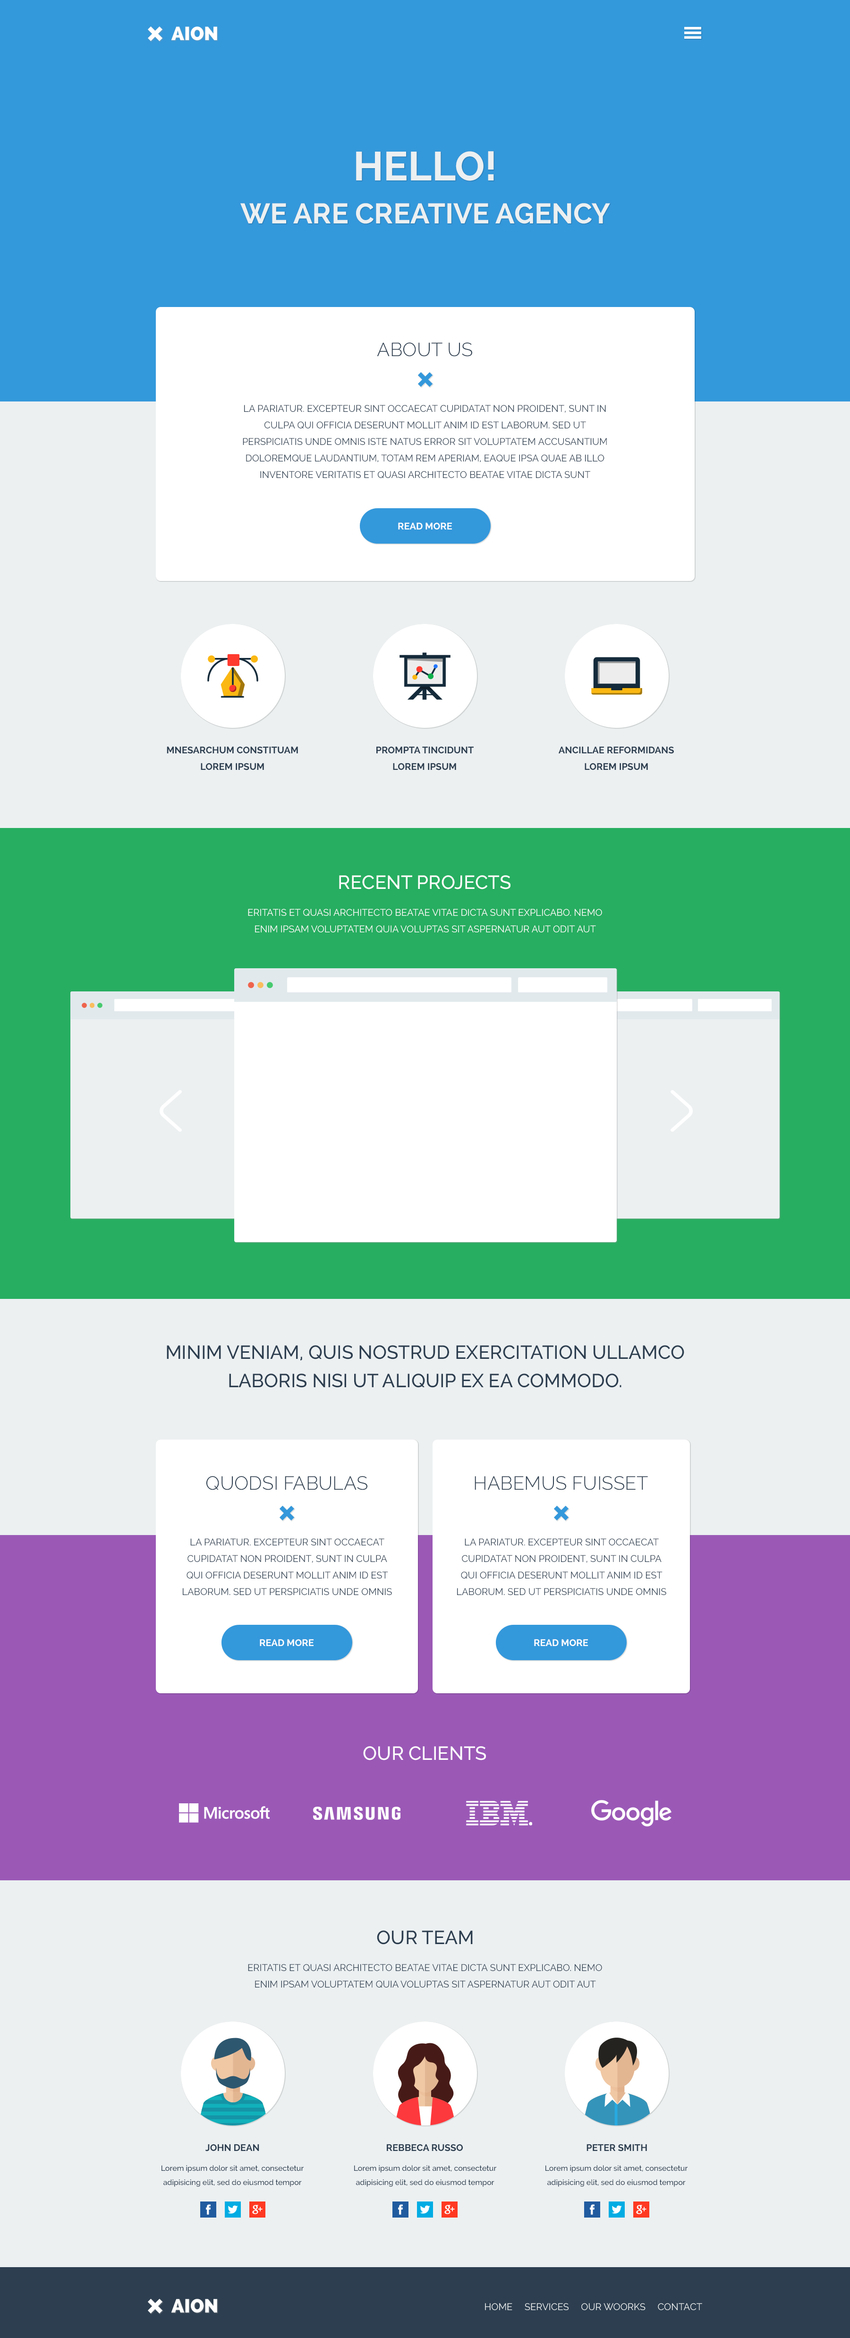 aion-free-psd-template-2